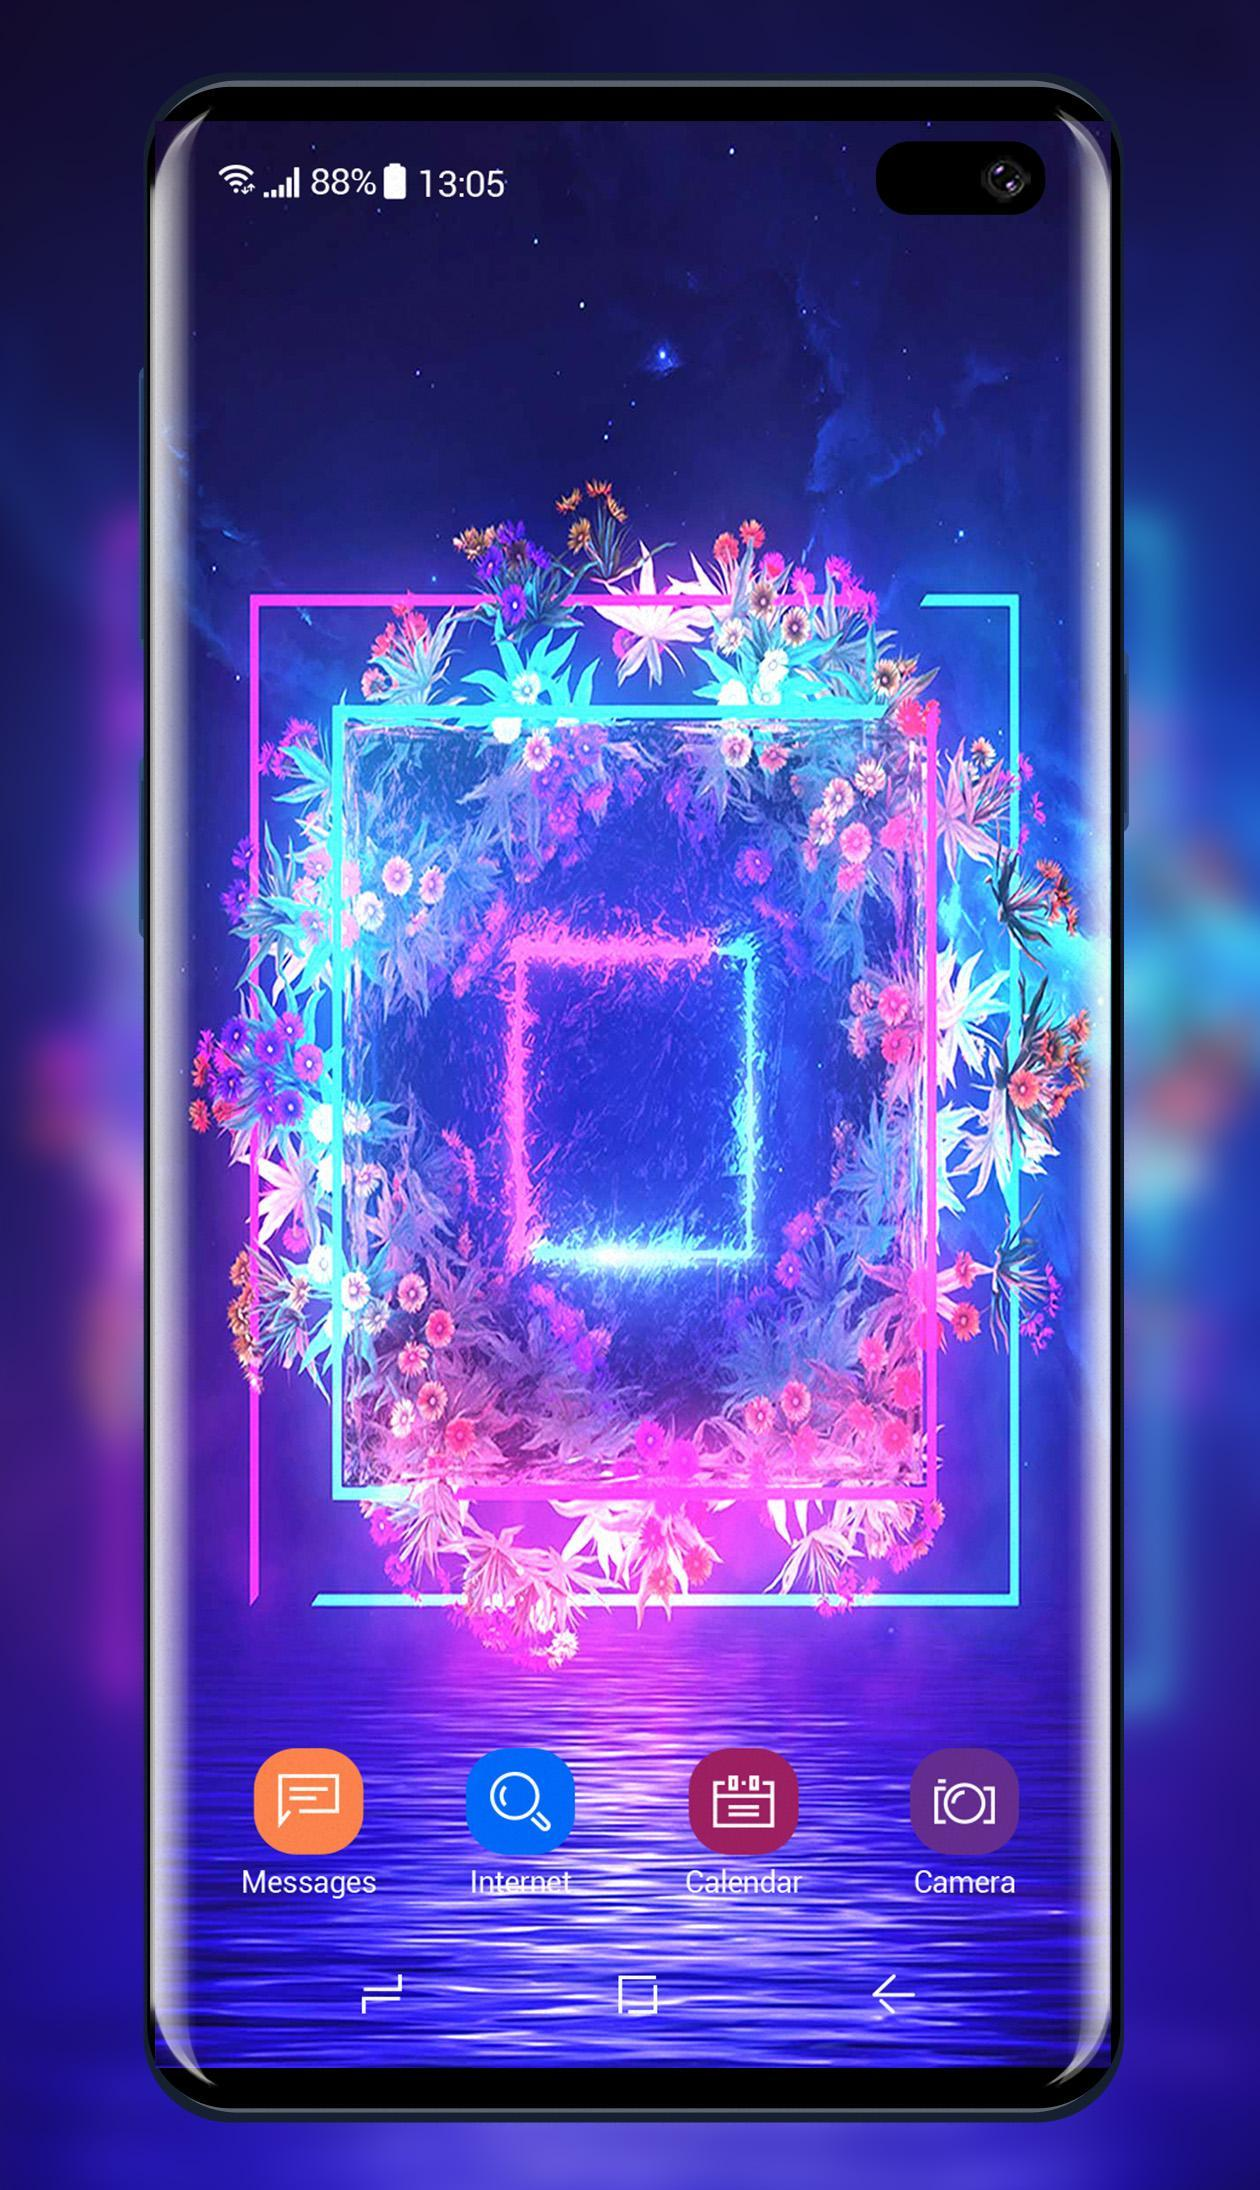 Glowing Wallpapers Hd For Android Apk Download